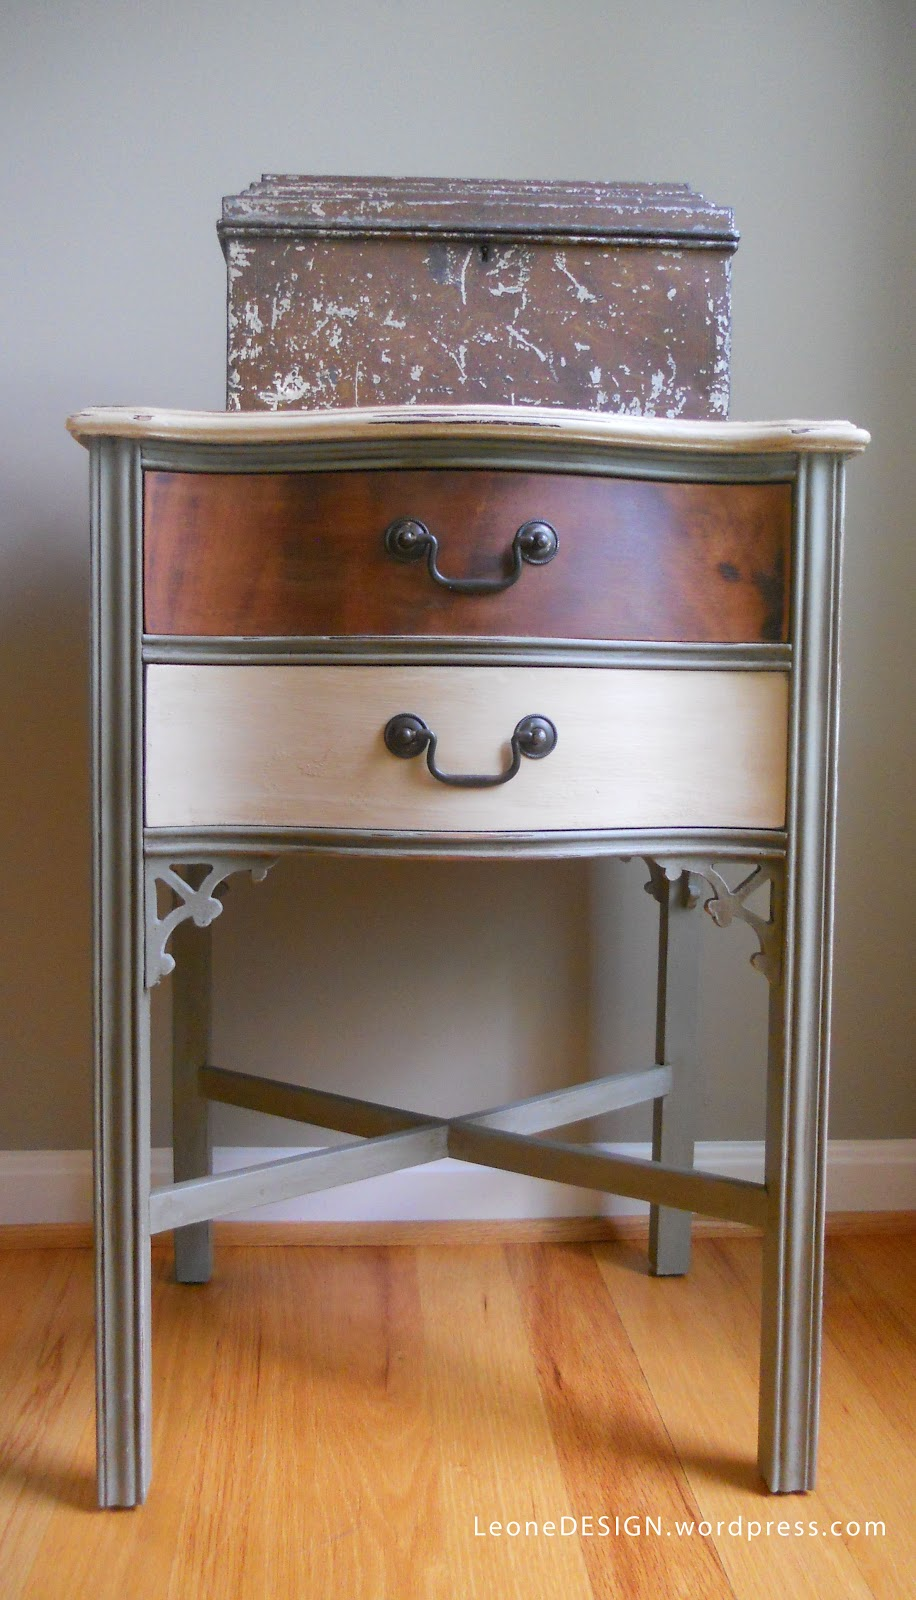 Shades Of Amber Annie Sloan Chalk Paint Link Party. Under Cabinet Tv For Kitchen. How Much Cost To Install Kitchen Cabinets. Temporary Kitchen Cabinet Covers. White Kitchen Cabinets Online. Glass Doors For Kitchen Cabinets. Kitchen Cabinets Outlet. Vintage Kitchen Cabinet. Menards Kitchen Cabinet Doors